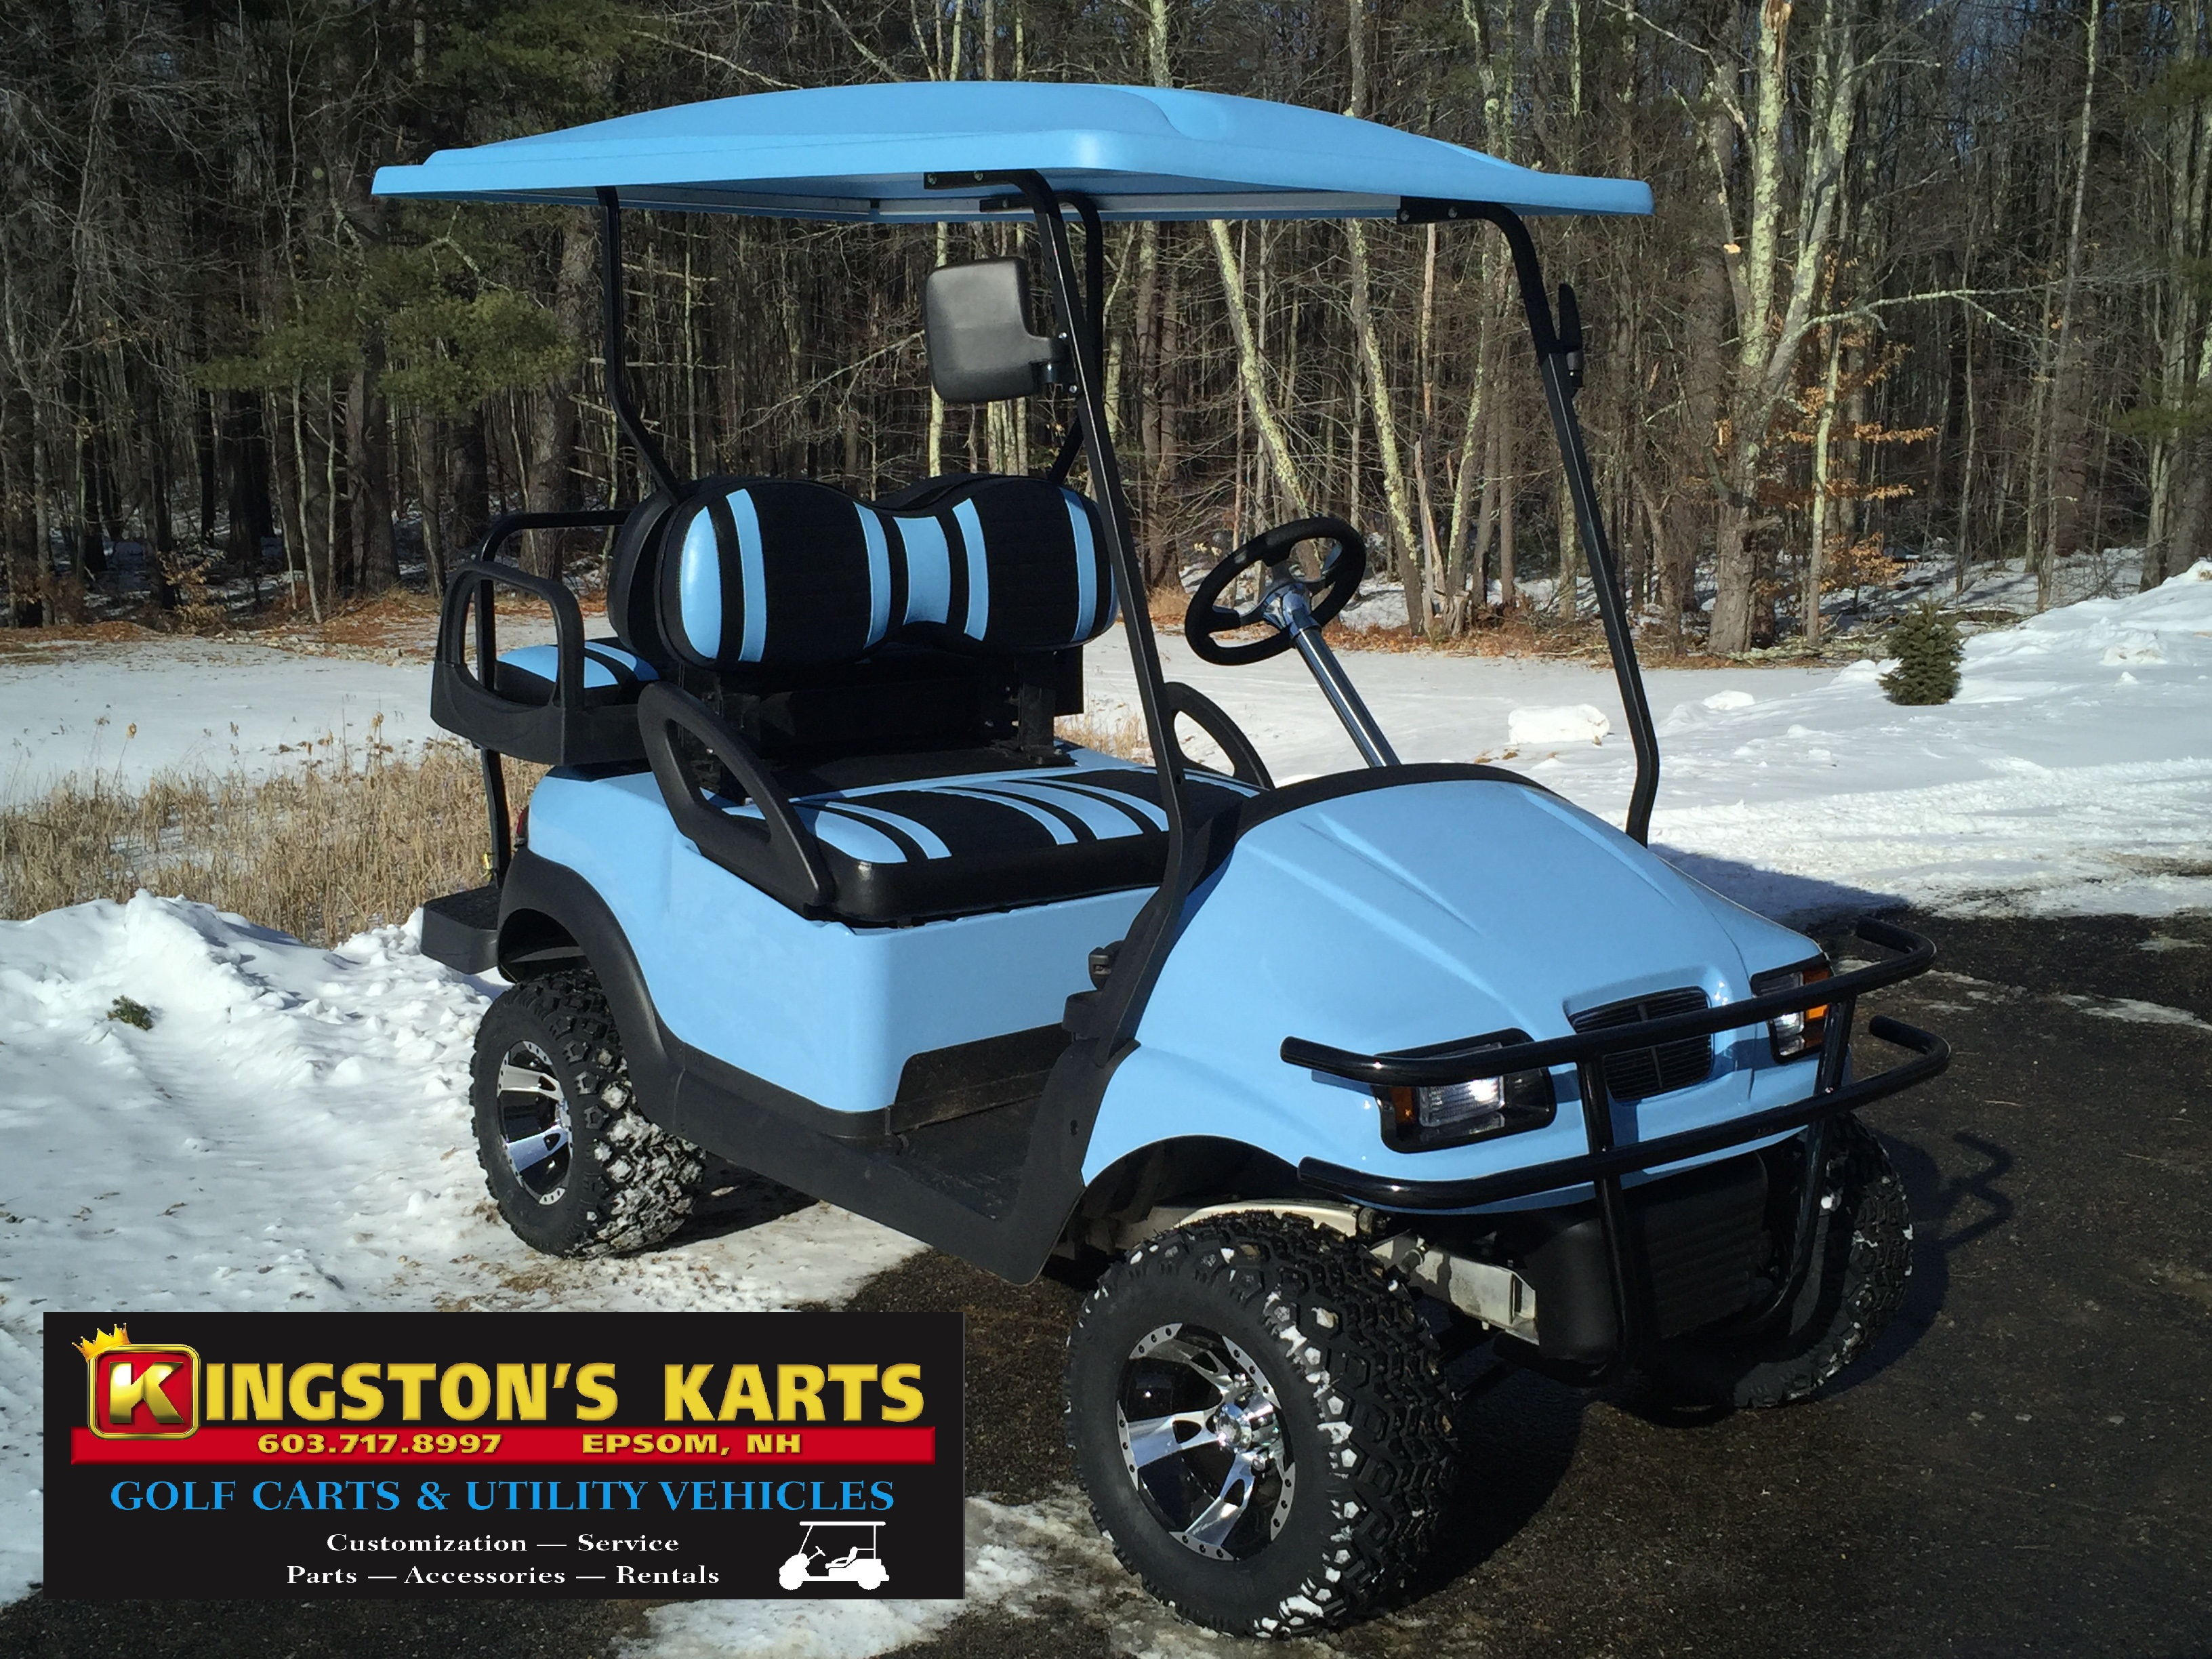 Dave Kingston's Karts-American LandMaster UTVs-NEW & USED Customized on sky candles, sky sunglasses, sky bags, sky wheels, sky games, sky comedy, sky cars, sky lifts,